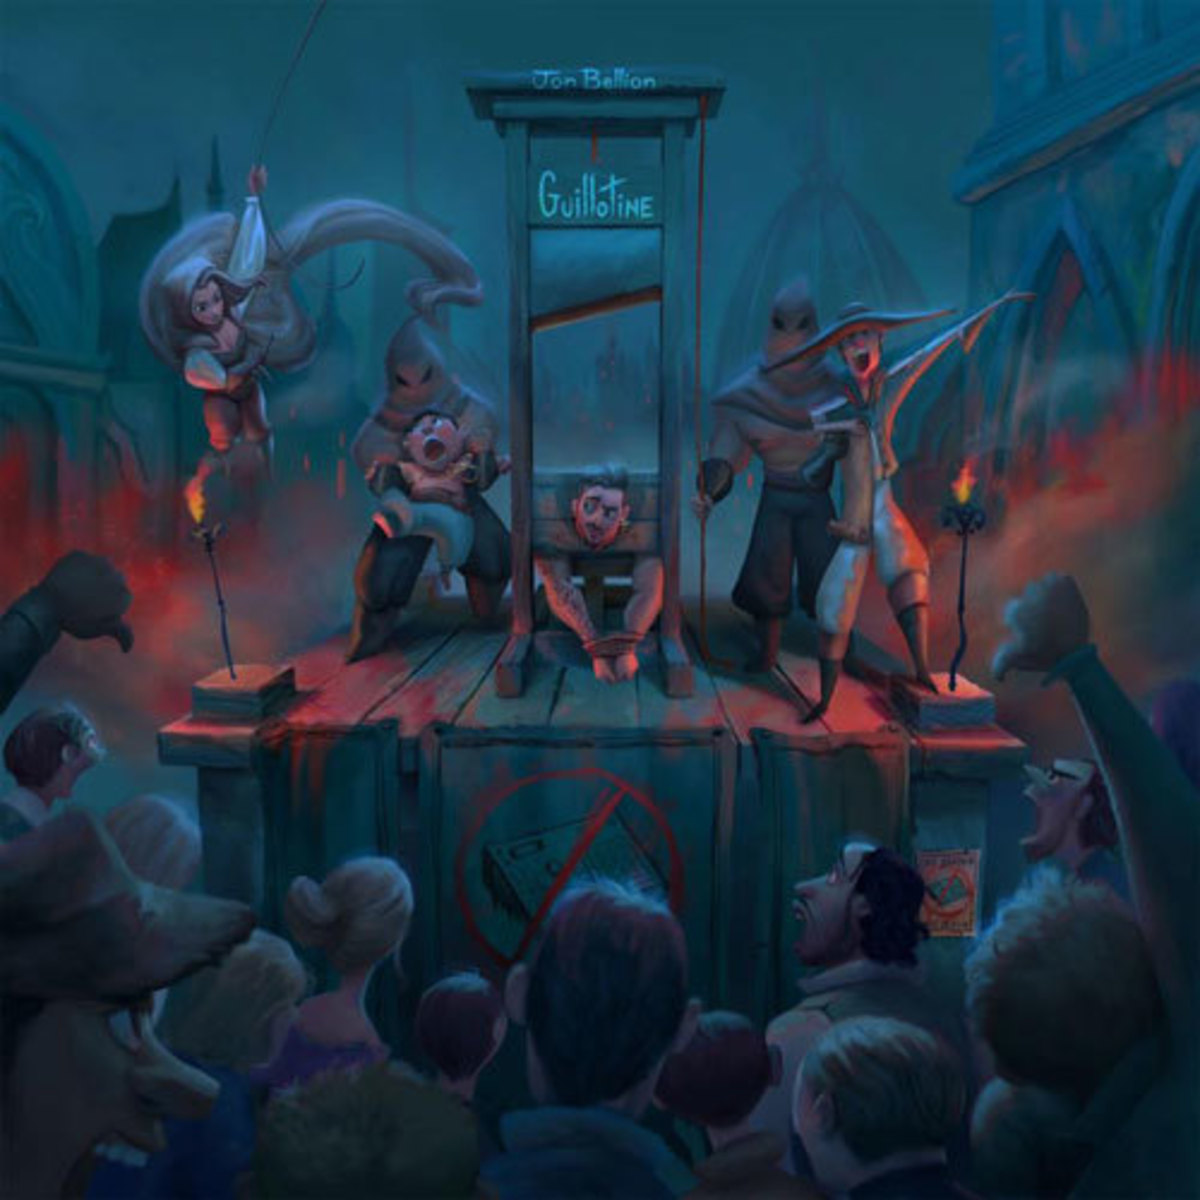 jon-bellion-guillotine.jpg